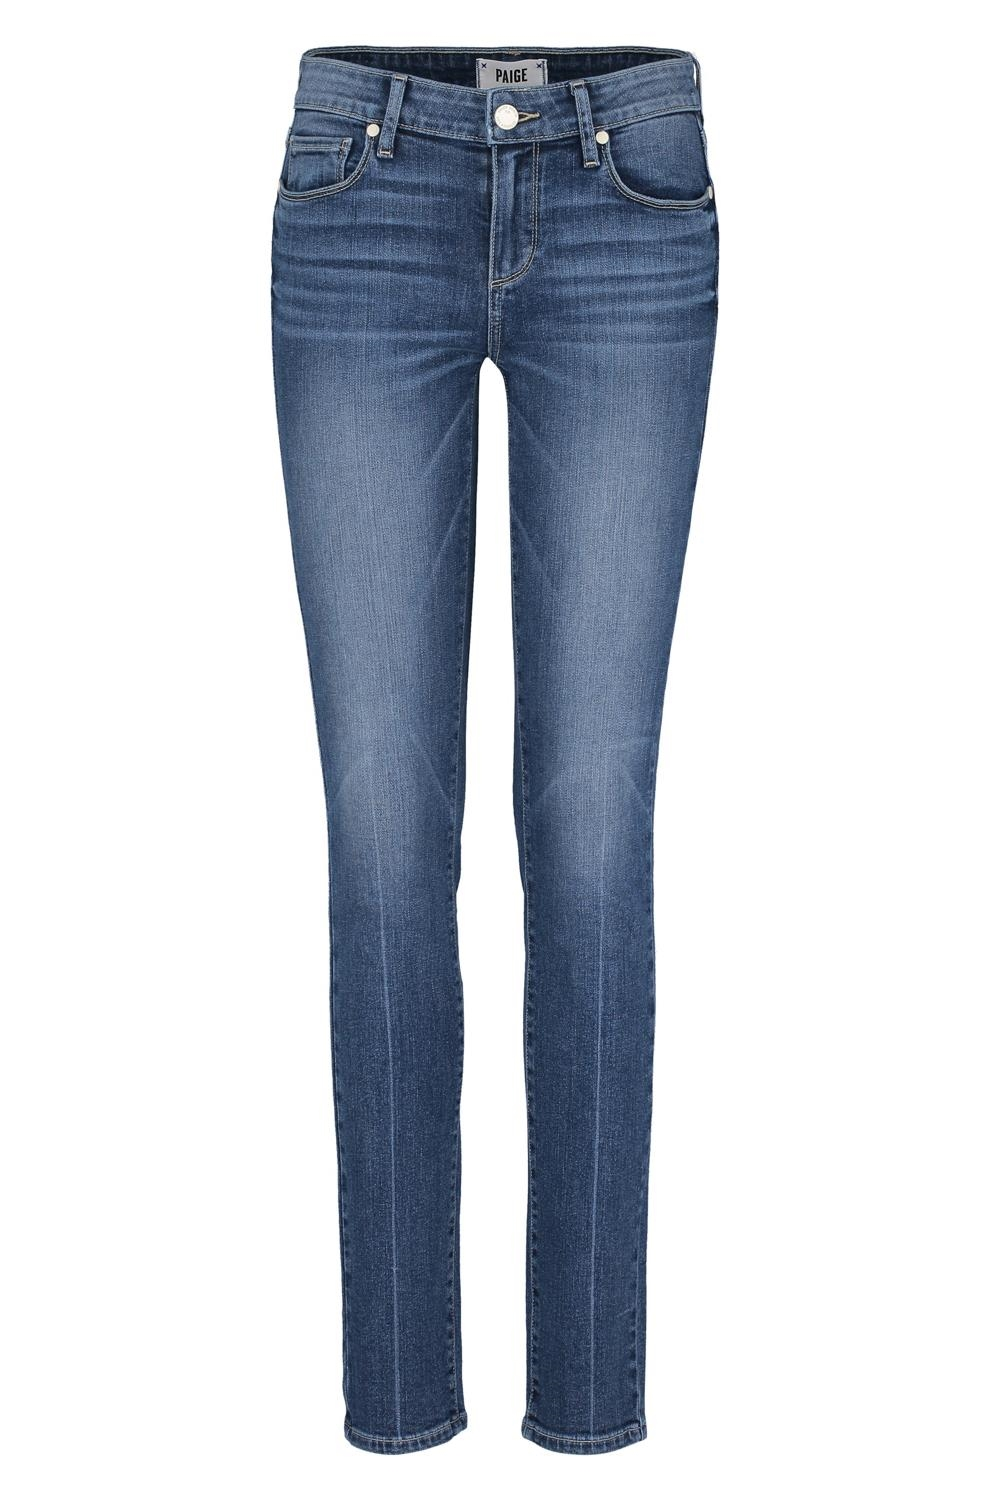 63804fff72e4a3 Paige Hoxton Straight Crop Jean in Norfolk -